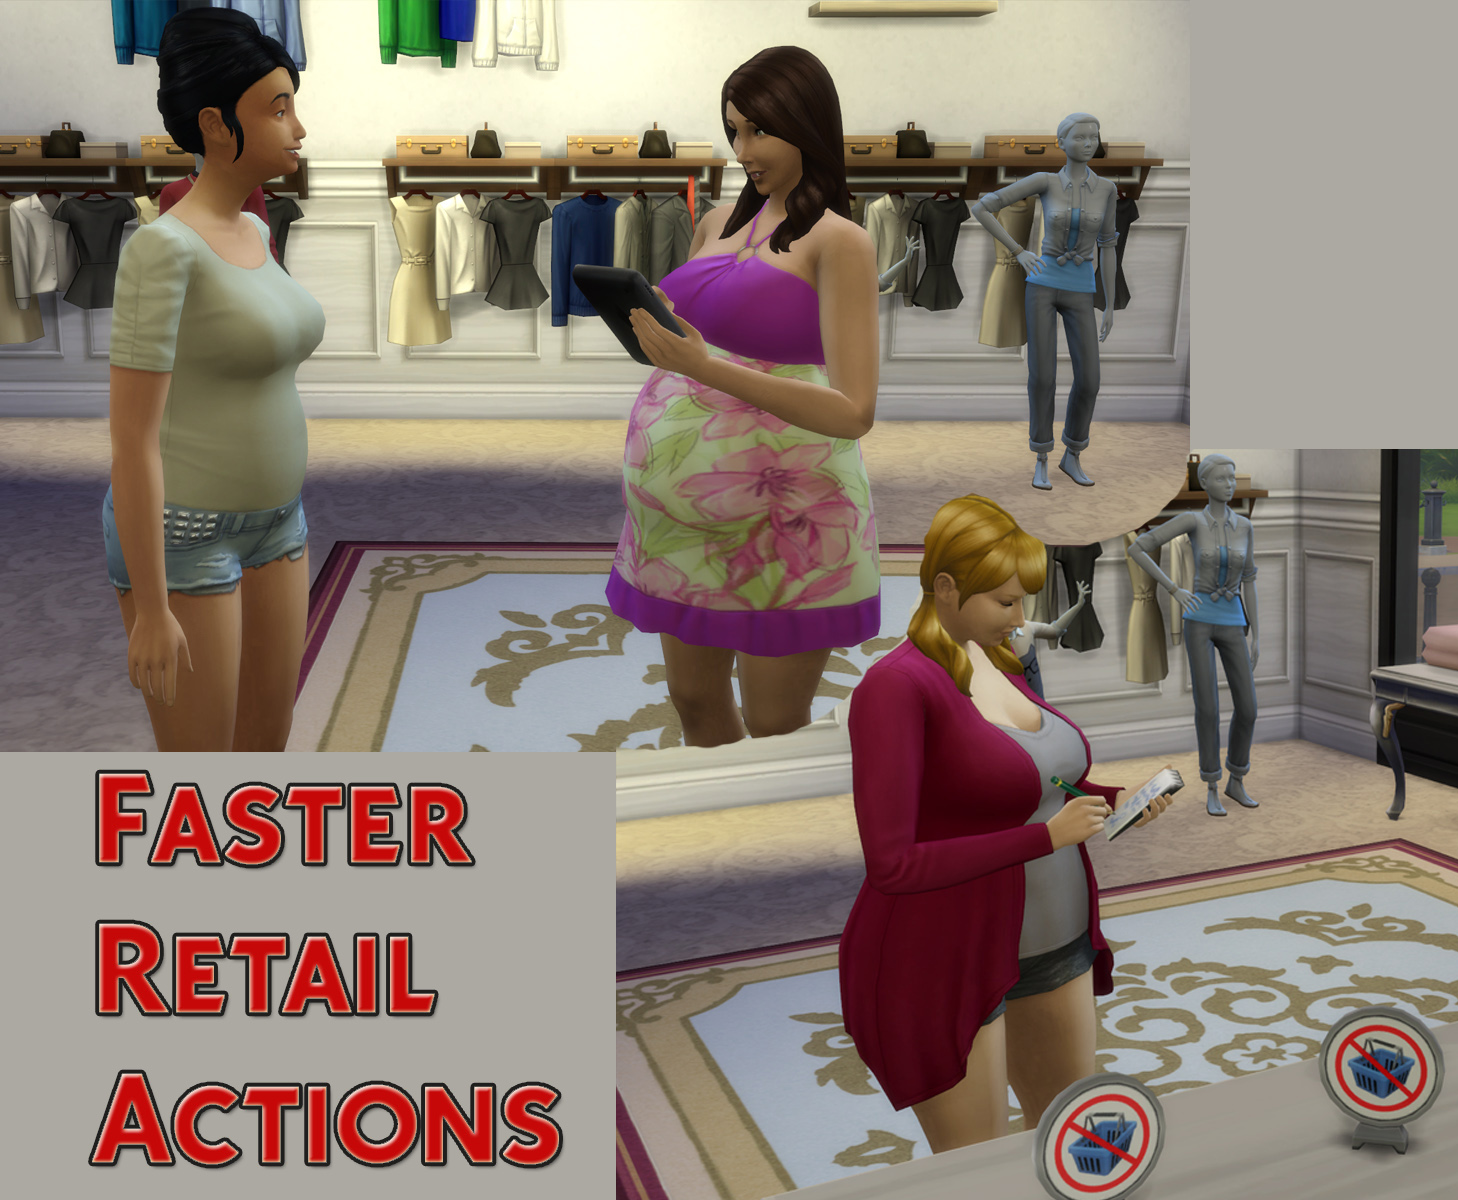 Faster Retail Actions.jpg